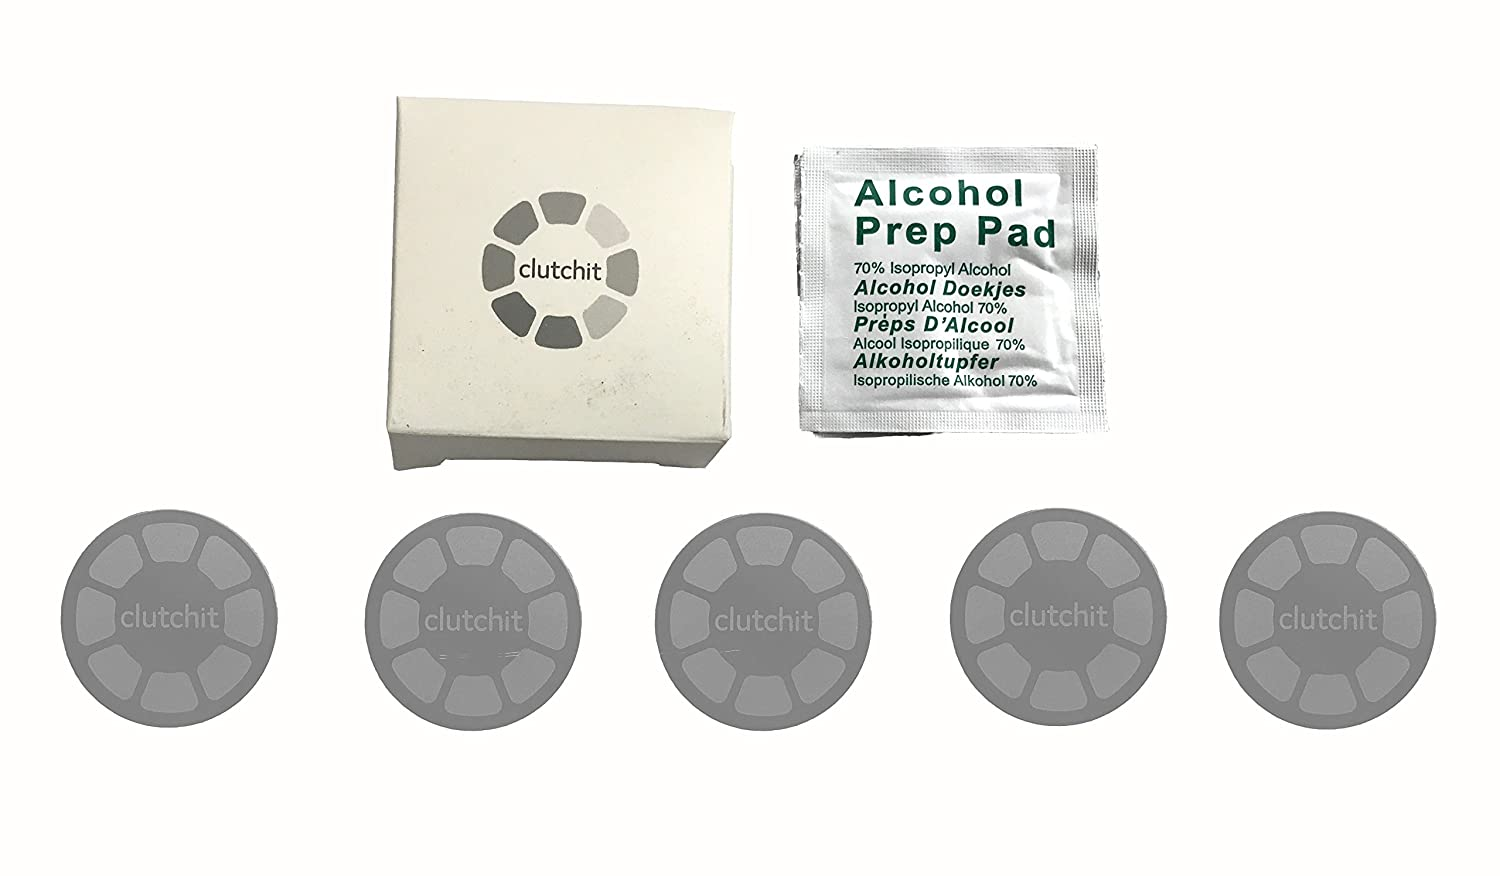 Space Grey Clutchit 5-Pack Thick Magnetic Metal Replacement Plate with 3M Adhesive for Surfaces